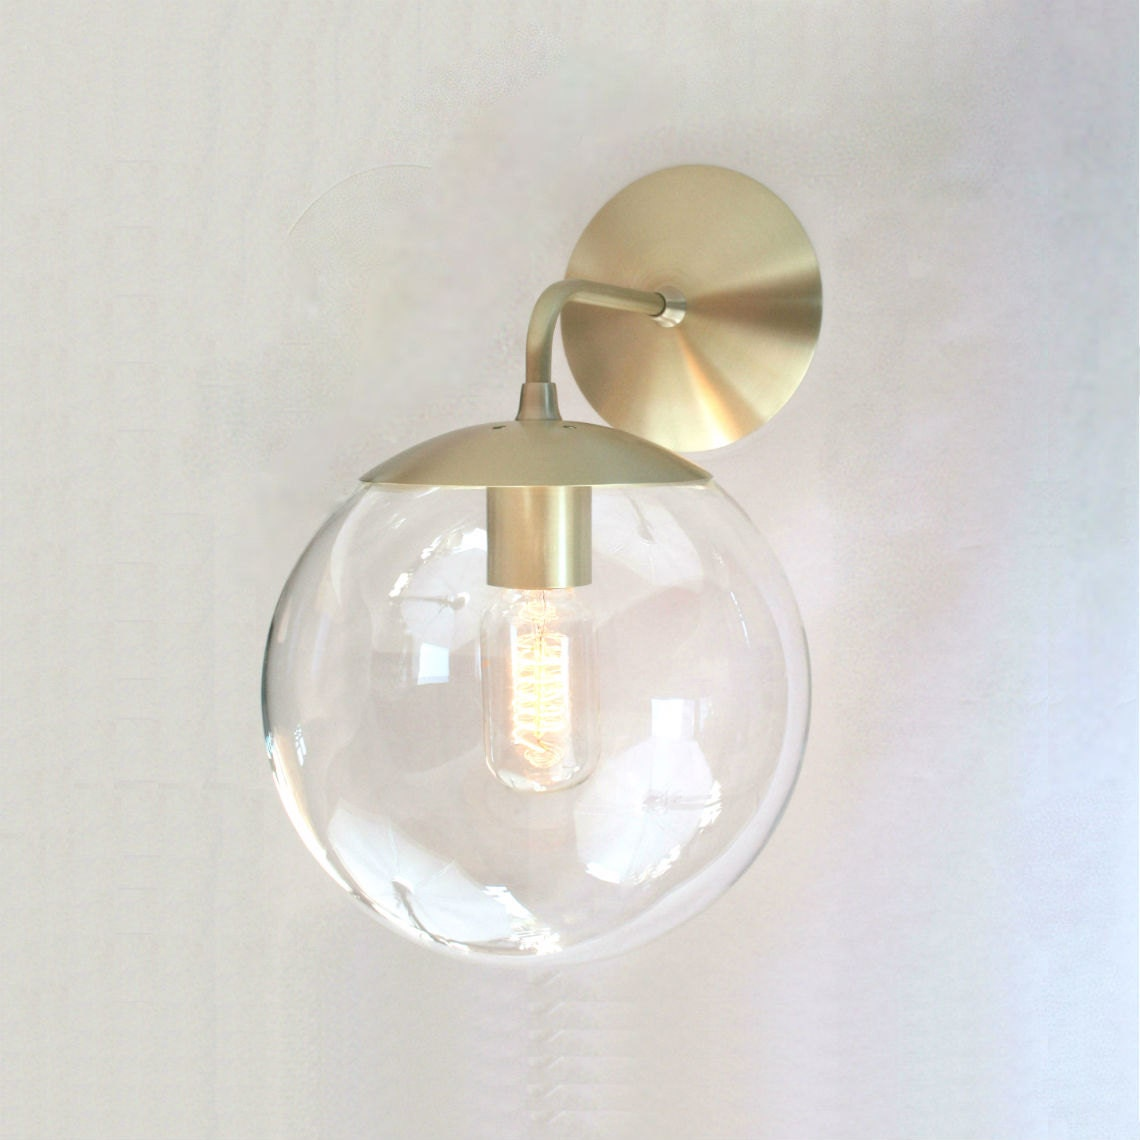 Mid Century Modern Wall Sconce Light 8 Clear Glass Globe